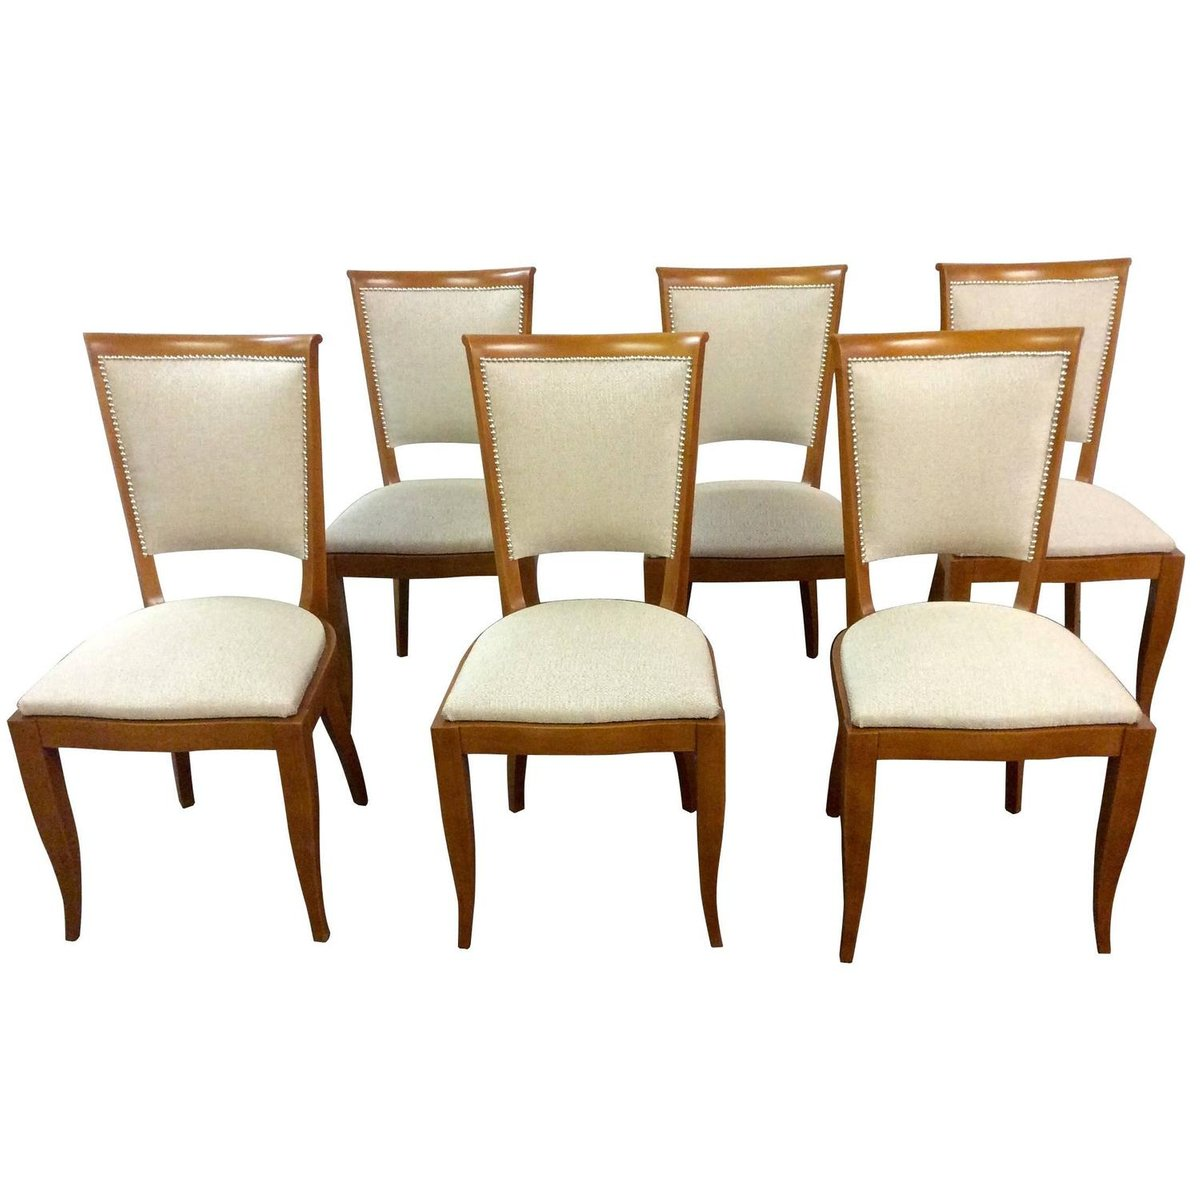 Dining Chairs On Sale: Art Deco French Dining Chairs, 1930s, Set Of 6 For Sale At